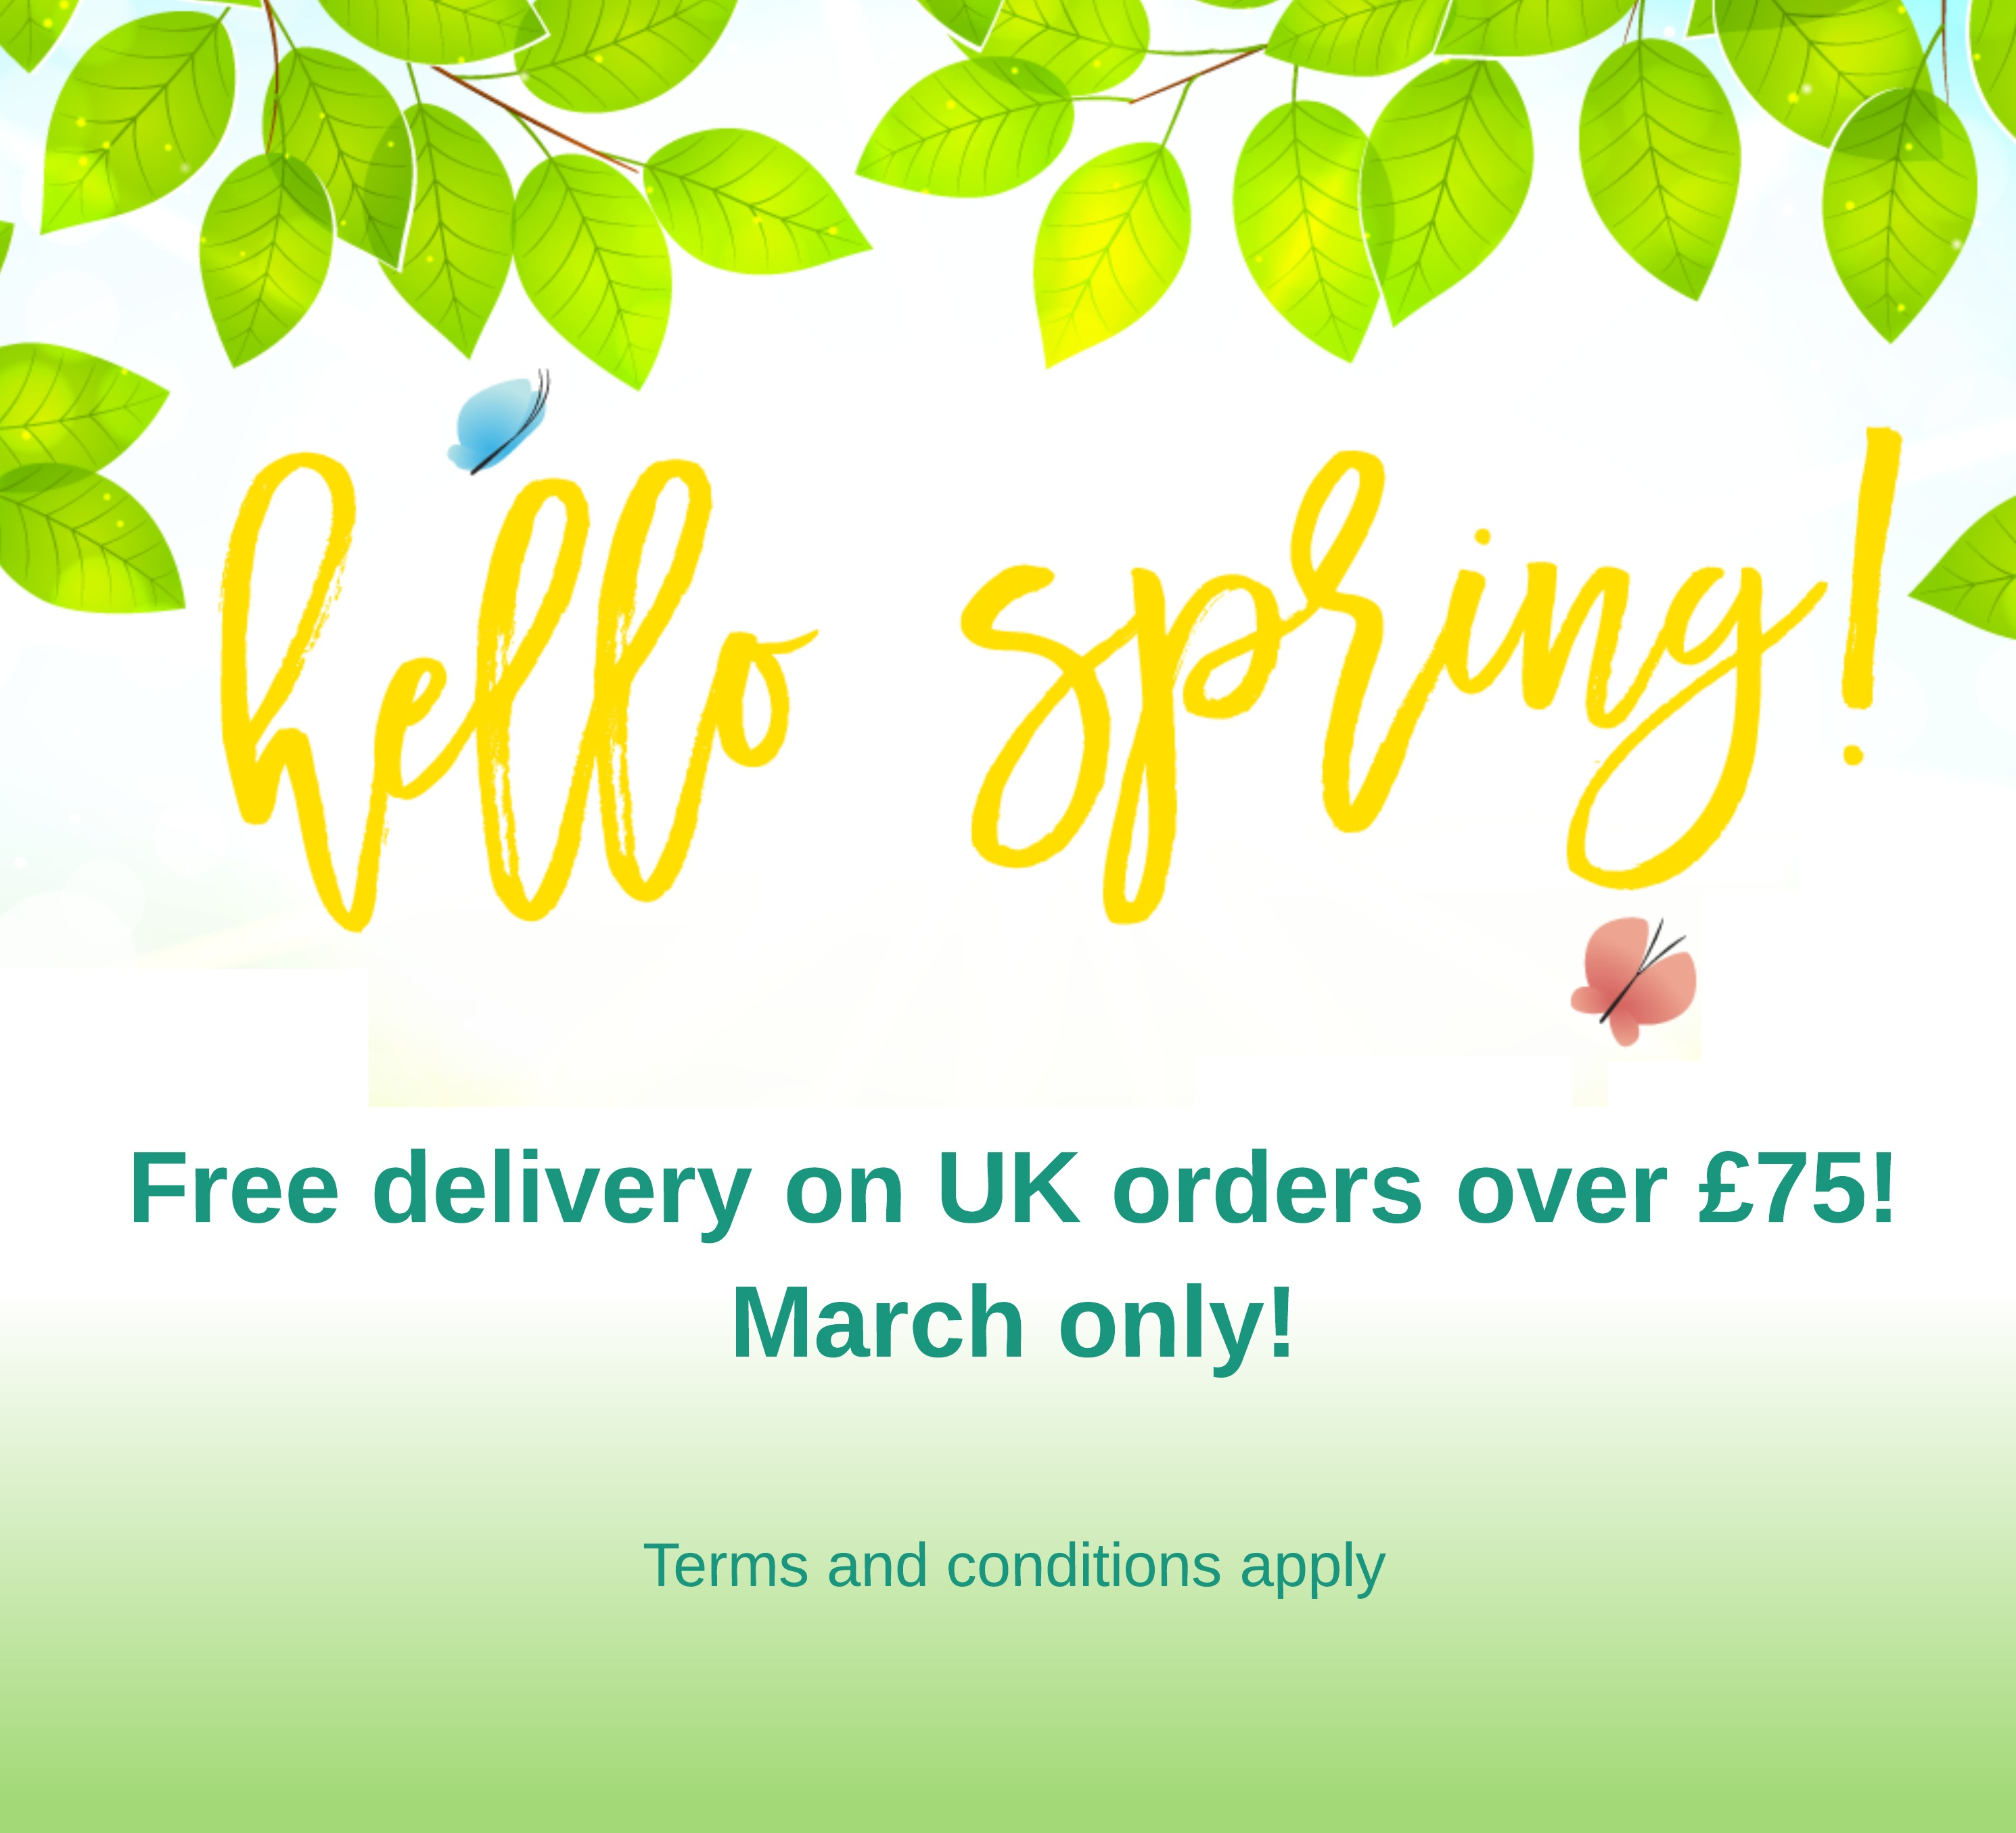 March Only! Free Delivery on Gift Packaging is Back!